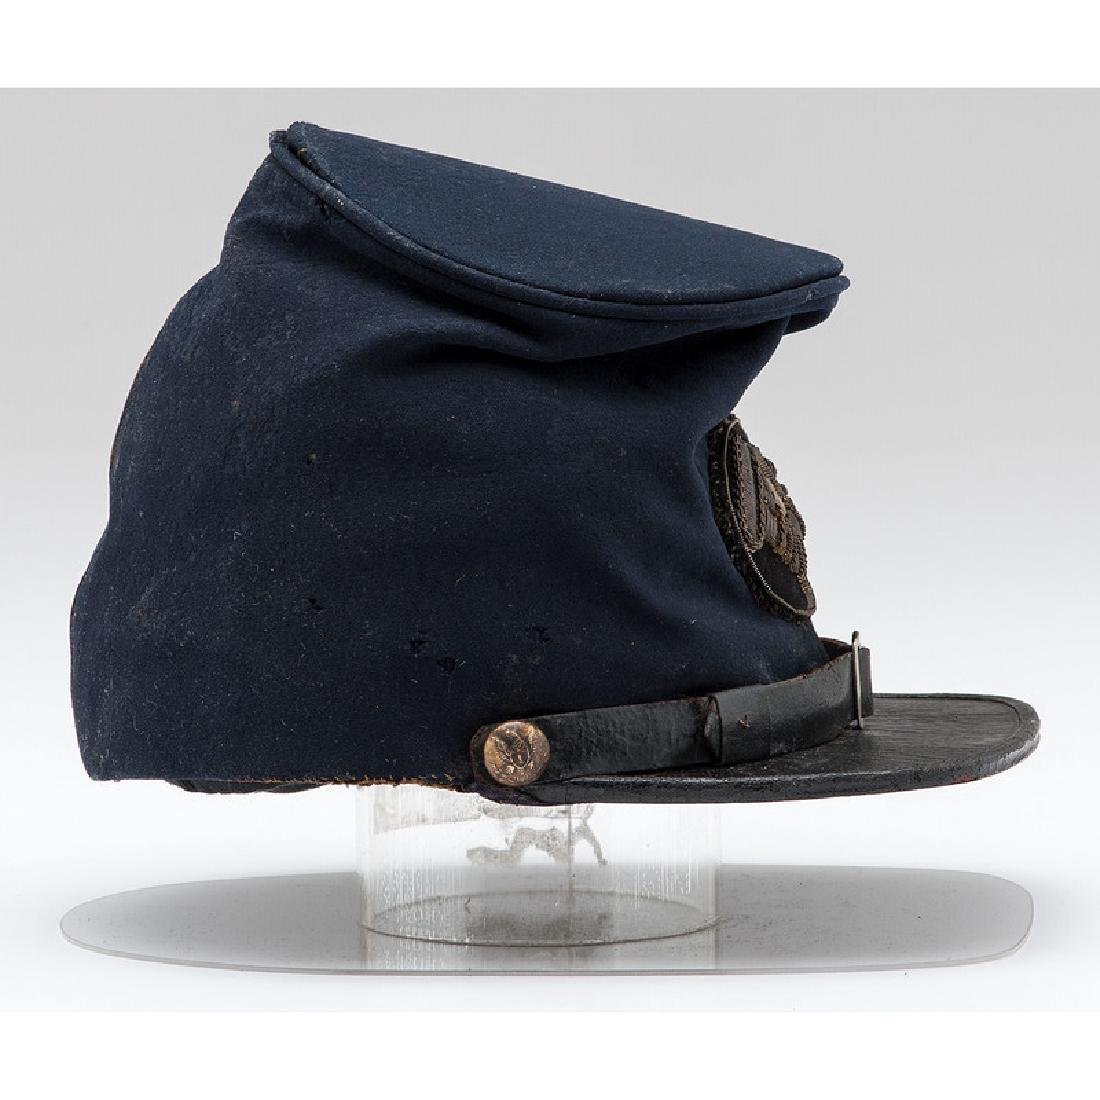 Commercial Federal Officer's Cap - 4